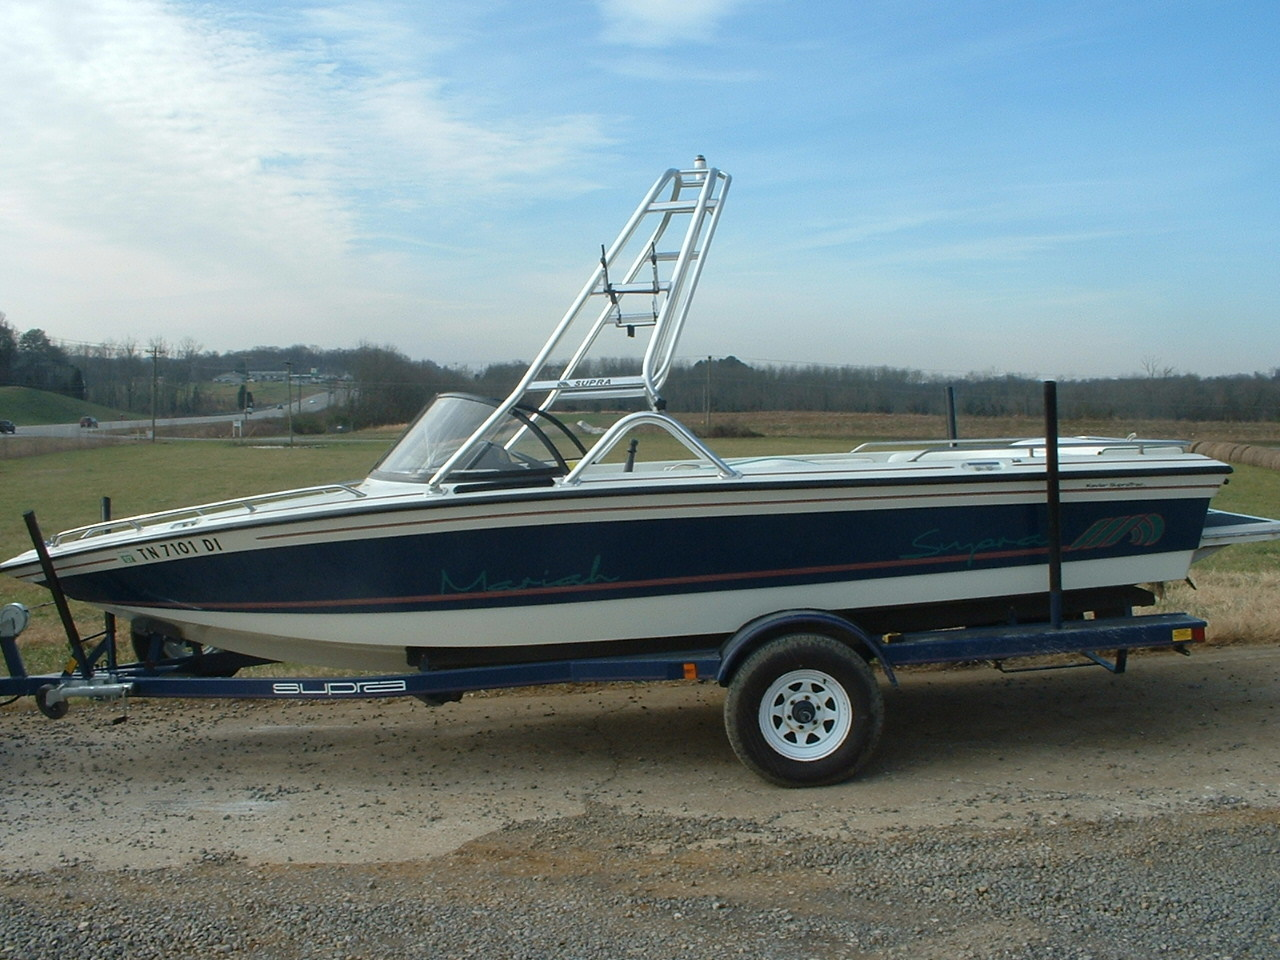 main image of 92 - 97 supra mariah wake boat with new dimension towers wakeboard tower